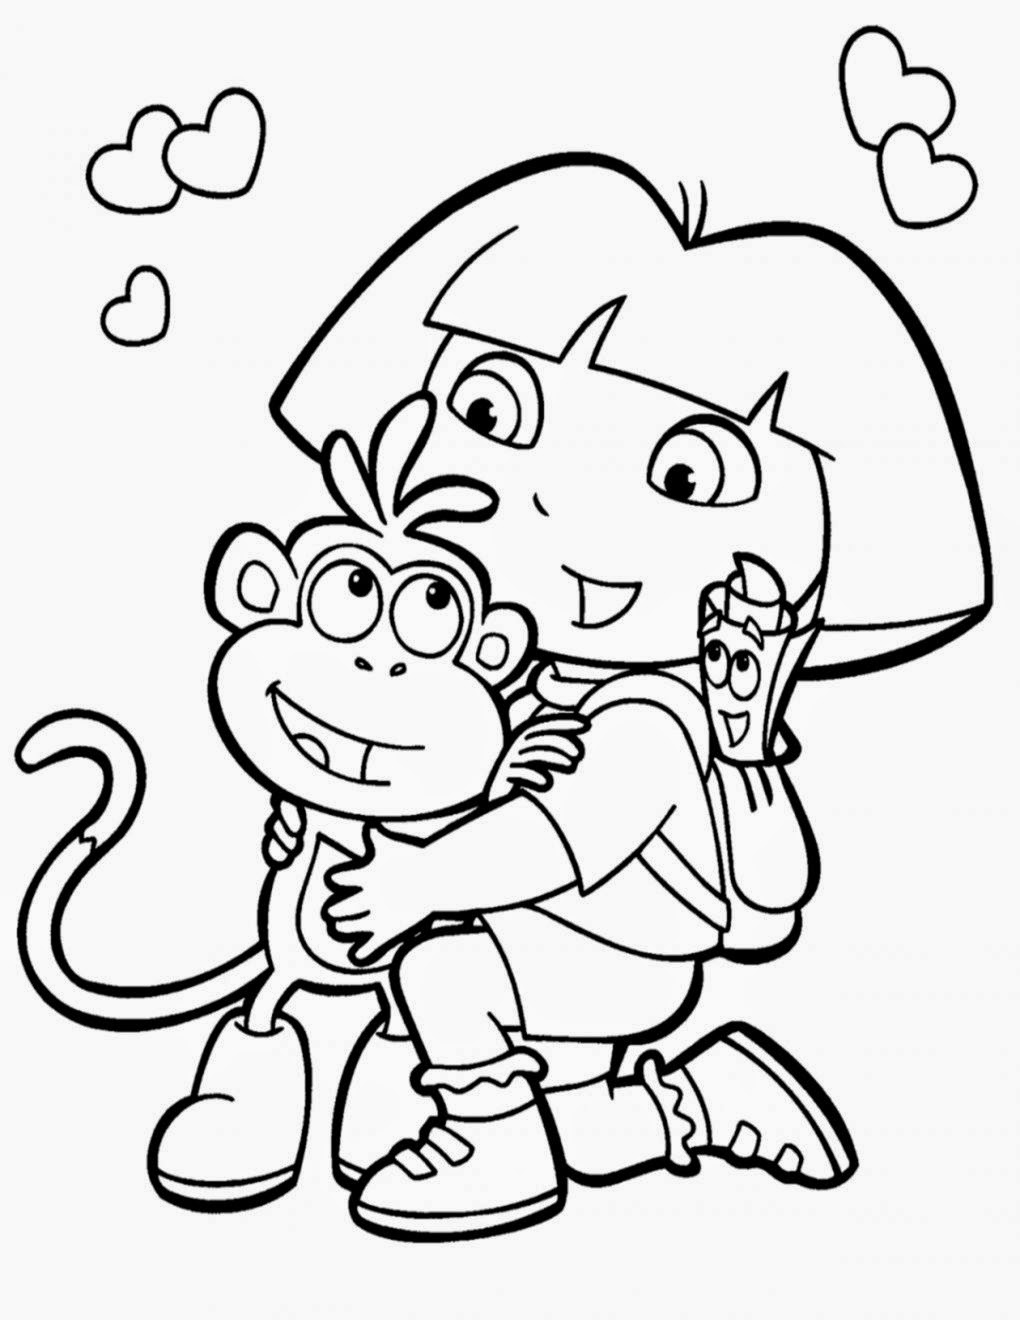 free printable coloring sheets for kids free coloring sheet